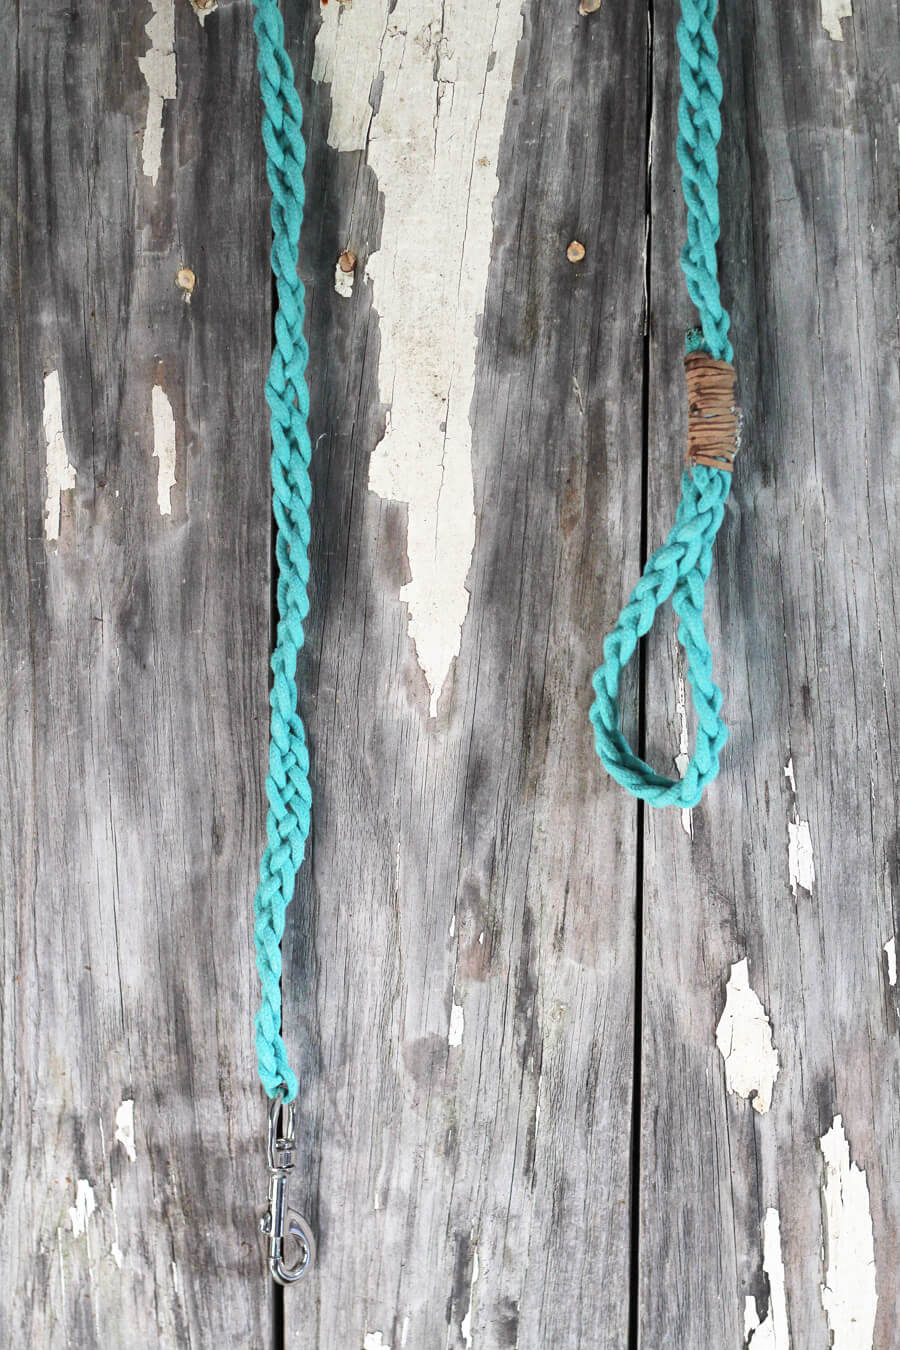 A teal blue rope dog leash drying on a wooden board